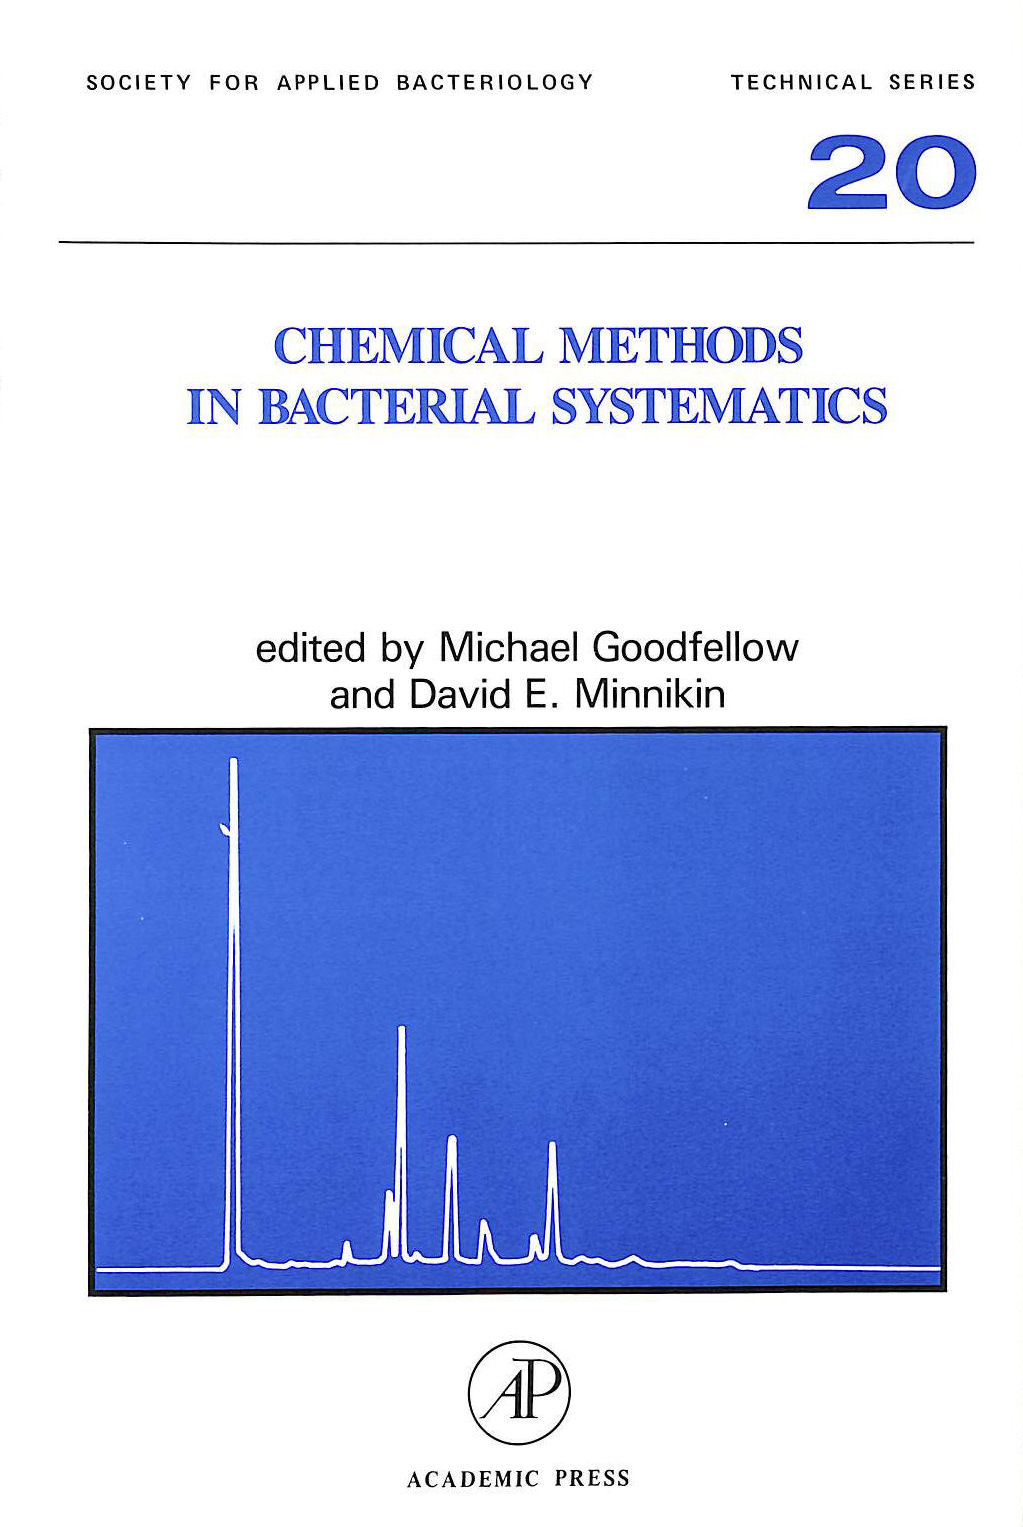 Image for Chemical Methods in Bacterial Systematics (Society for Applied Bacteriology Technical Series)